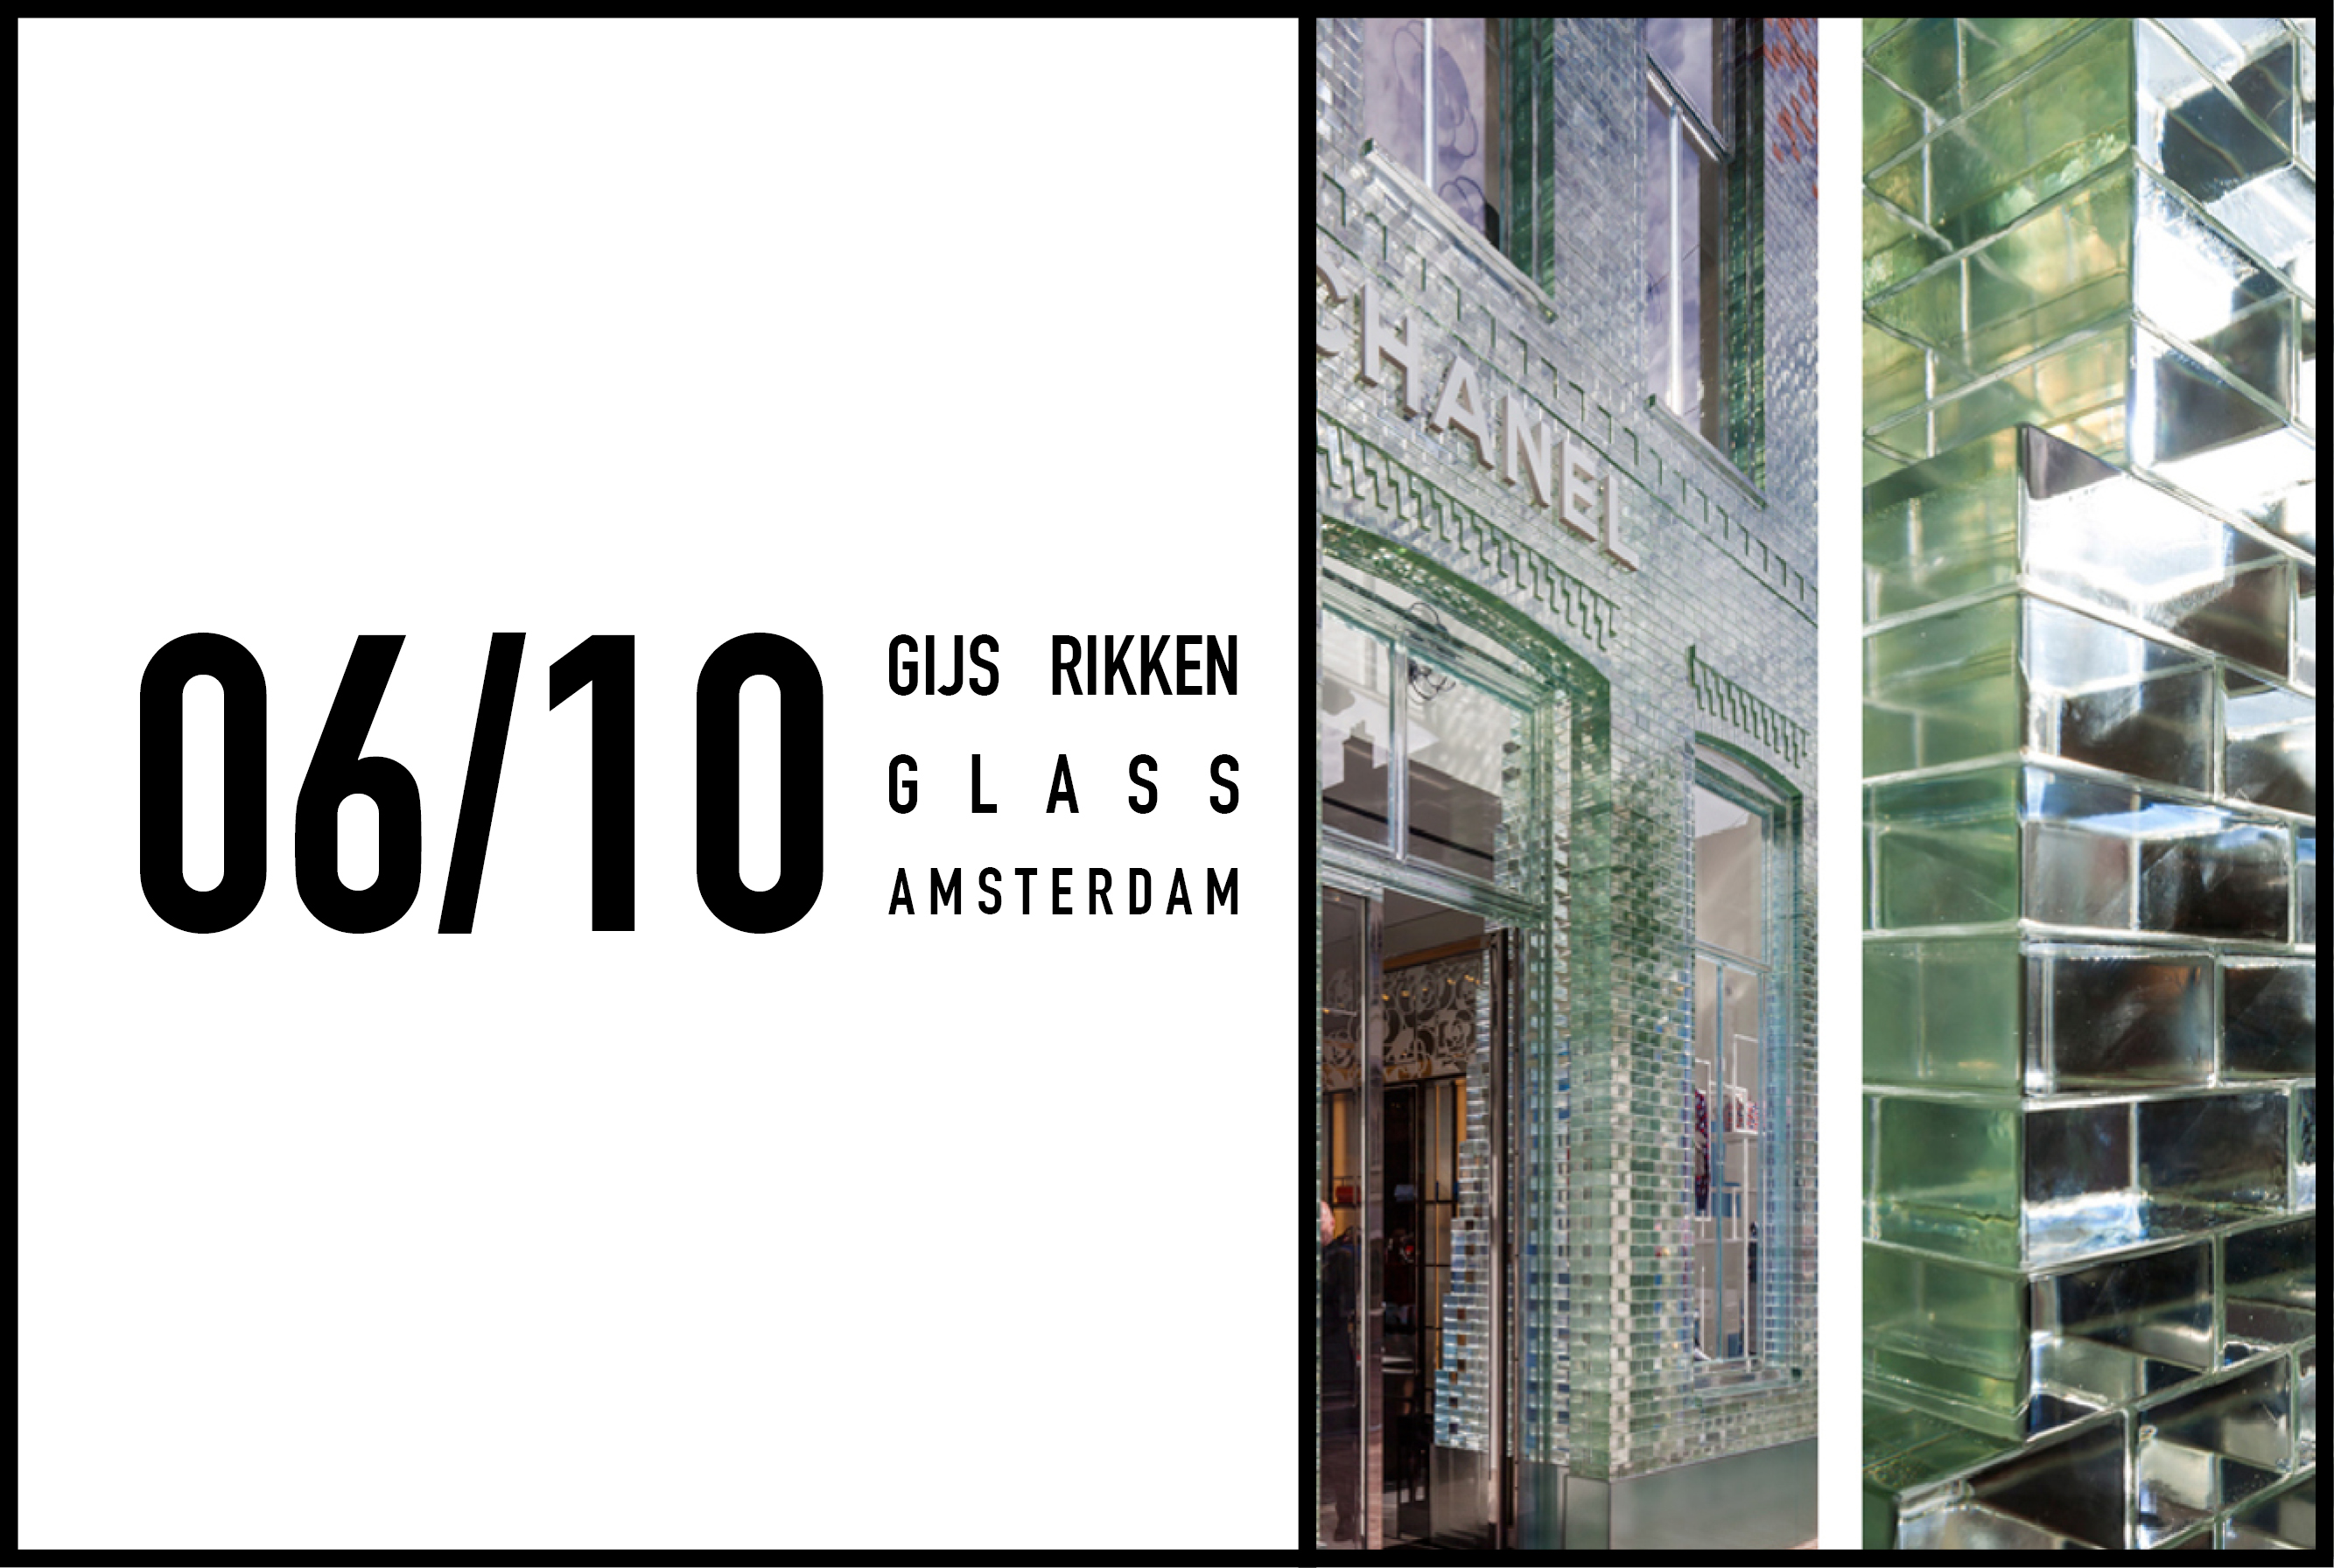 MVRDV's Gijs Rikken will speak about Glass at Dutch Design Awards preview 2016, 6th October 2016